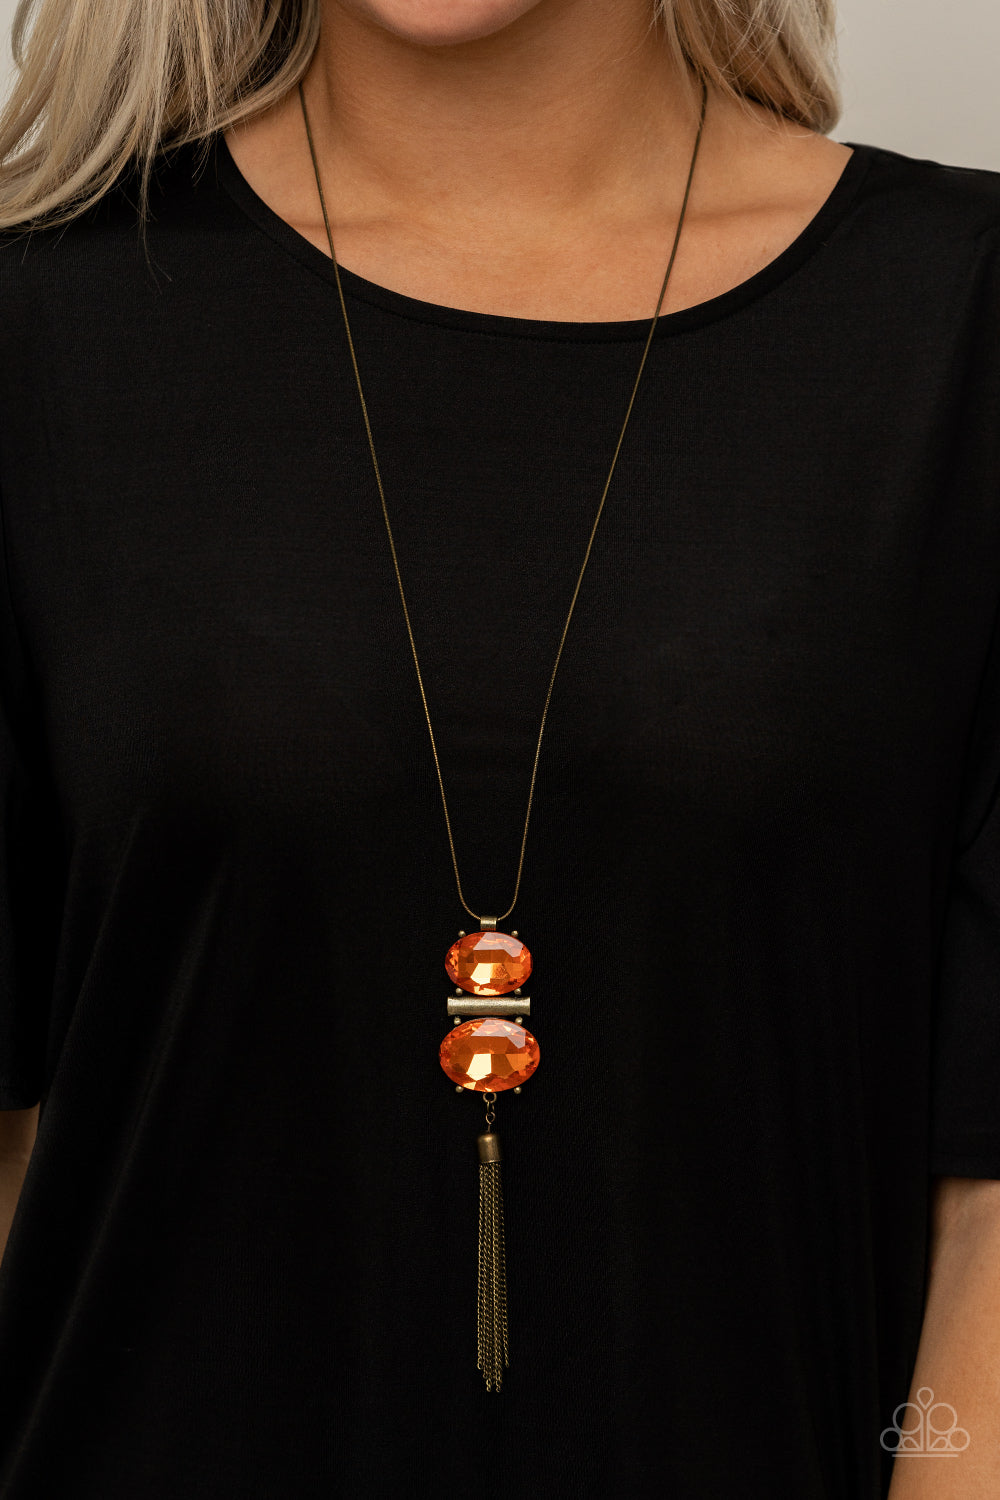 Paparazzi Accessories Runway Rival - Orange Necklaces - Lady T Accessories